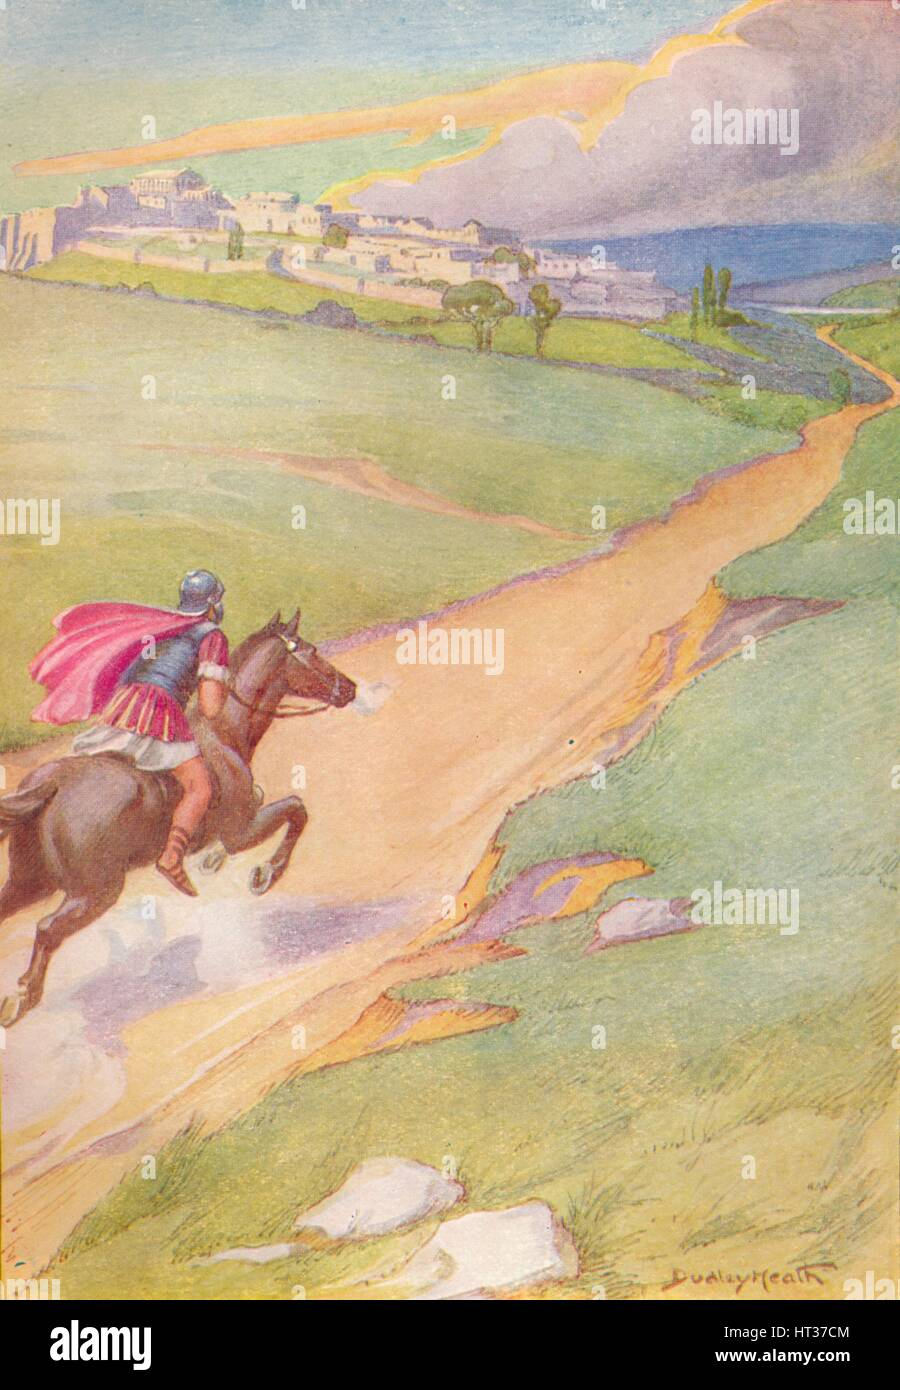 'A messenger was seen spurring his horse toward the city', c1912 (1912). Artist: Ernest Dudley Heath. - Stock Image